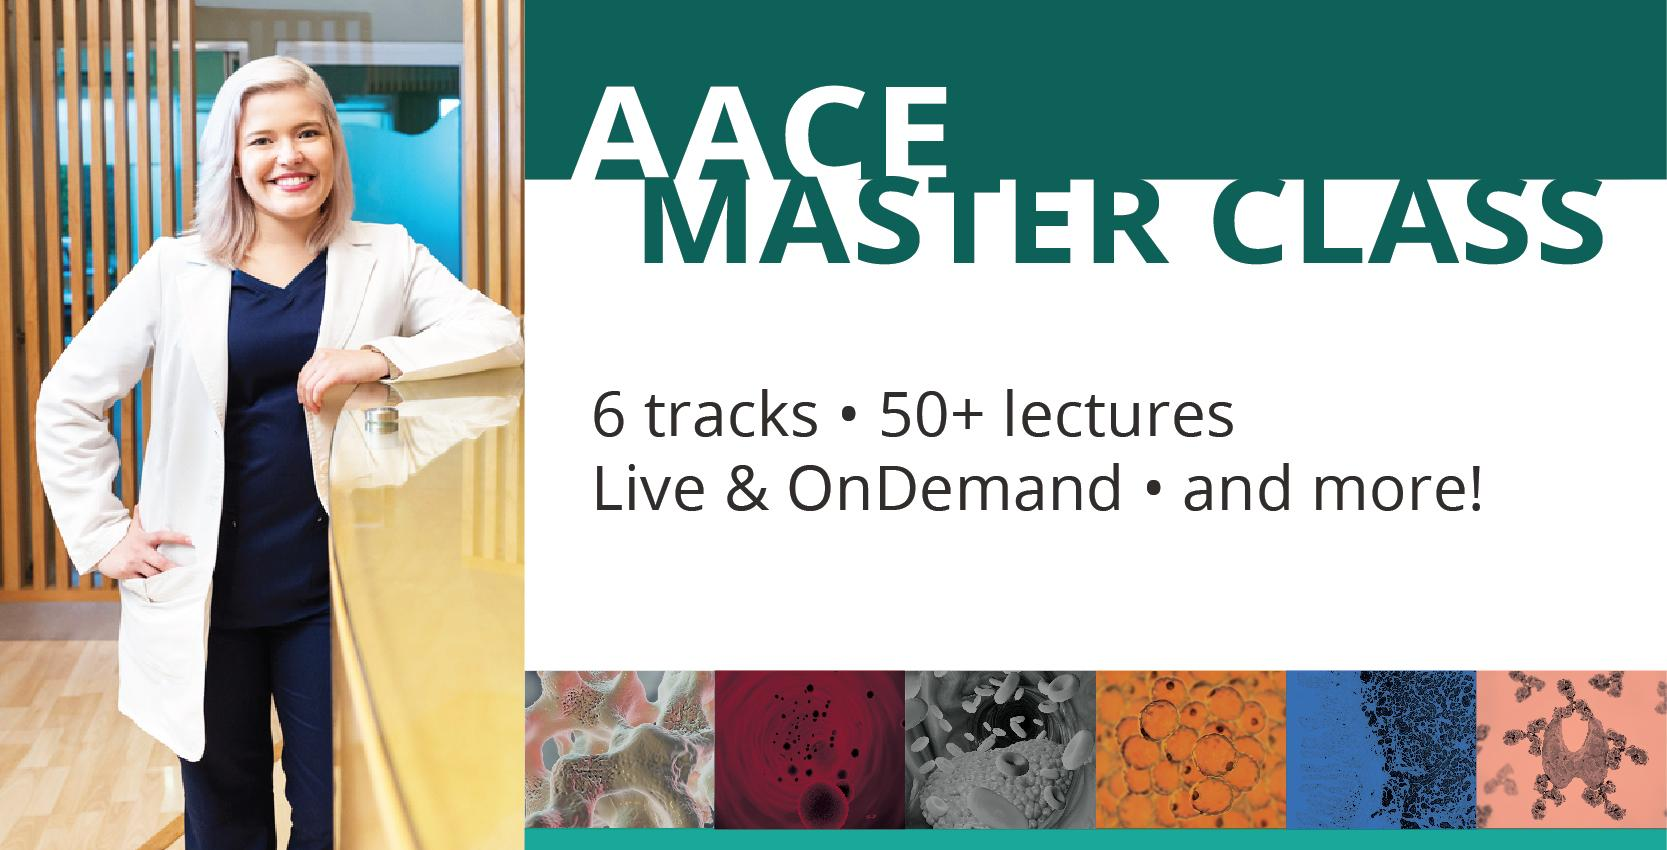 AACE Master Class offers 50+ lectures live and ondemand